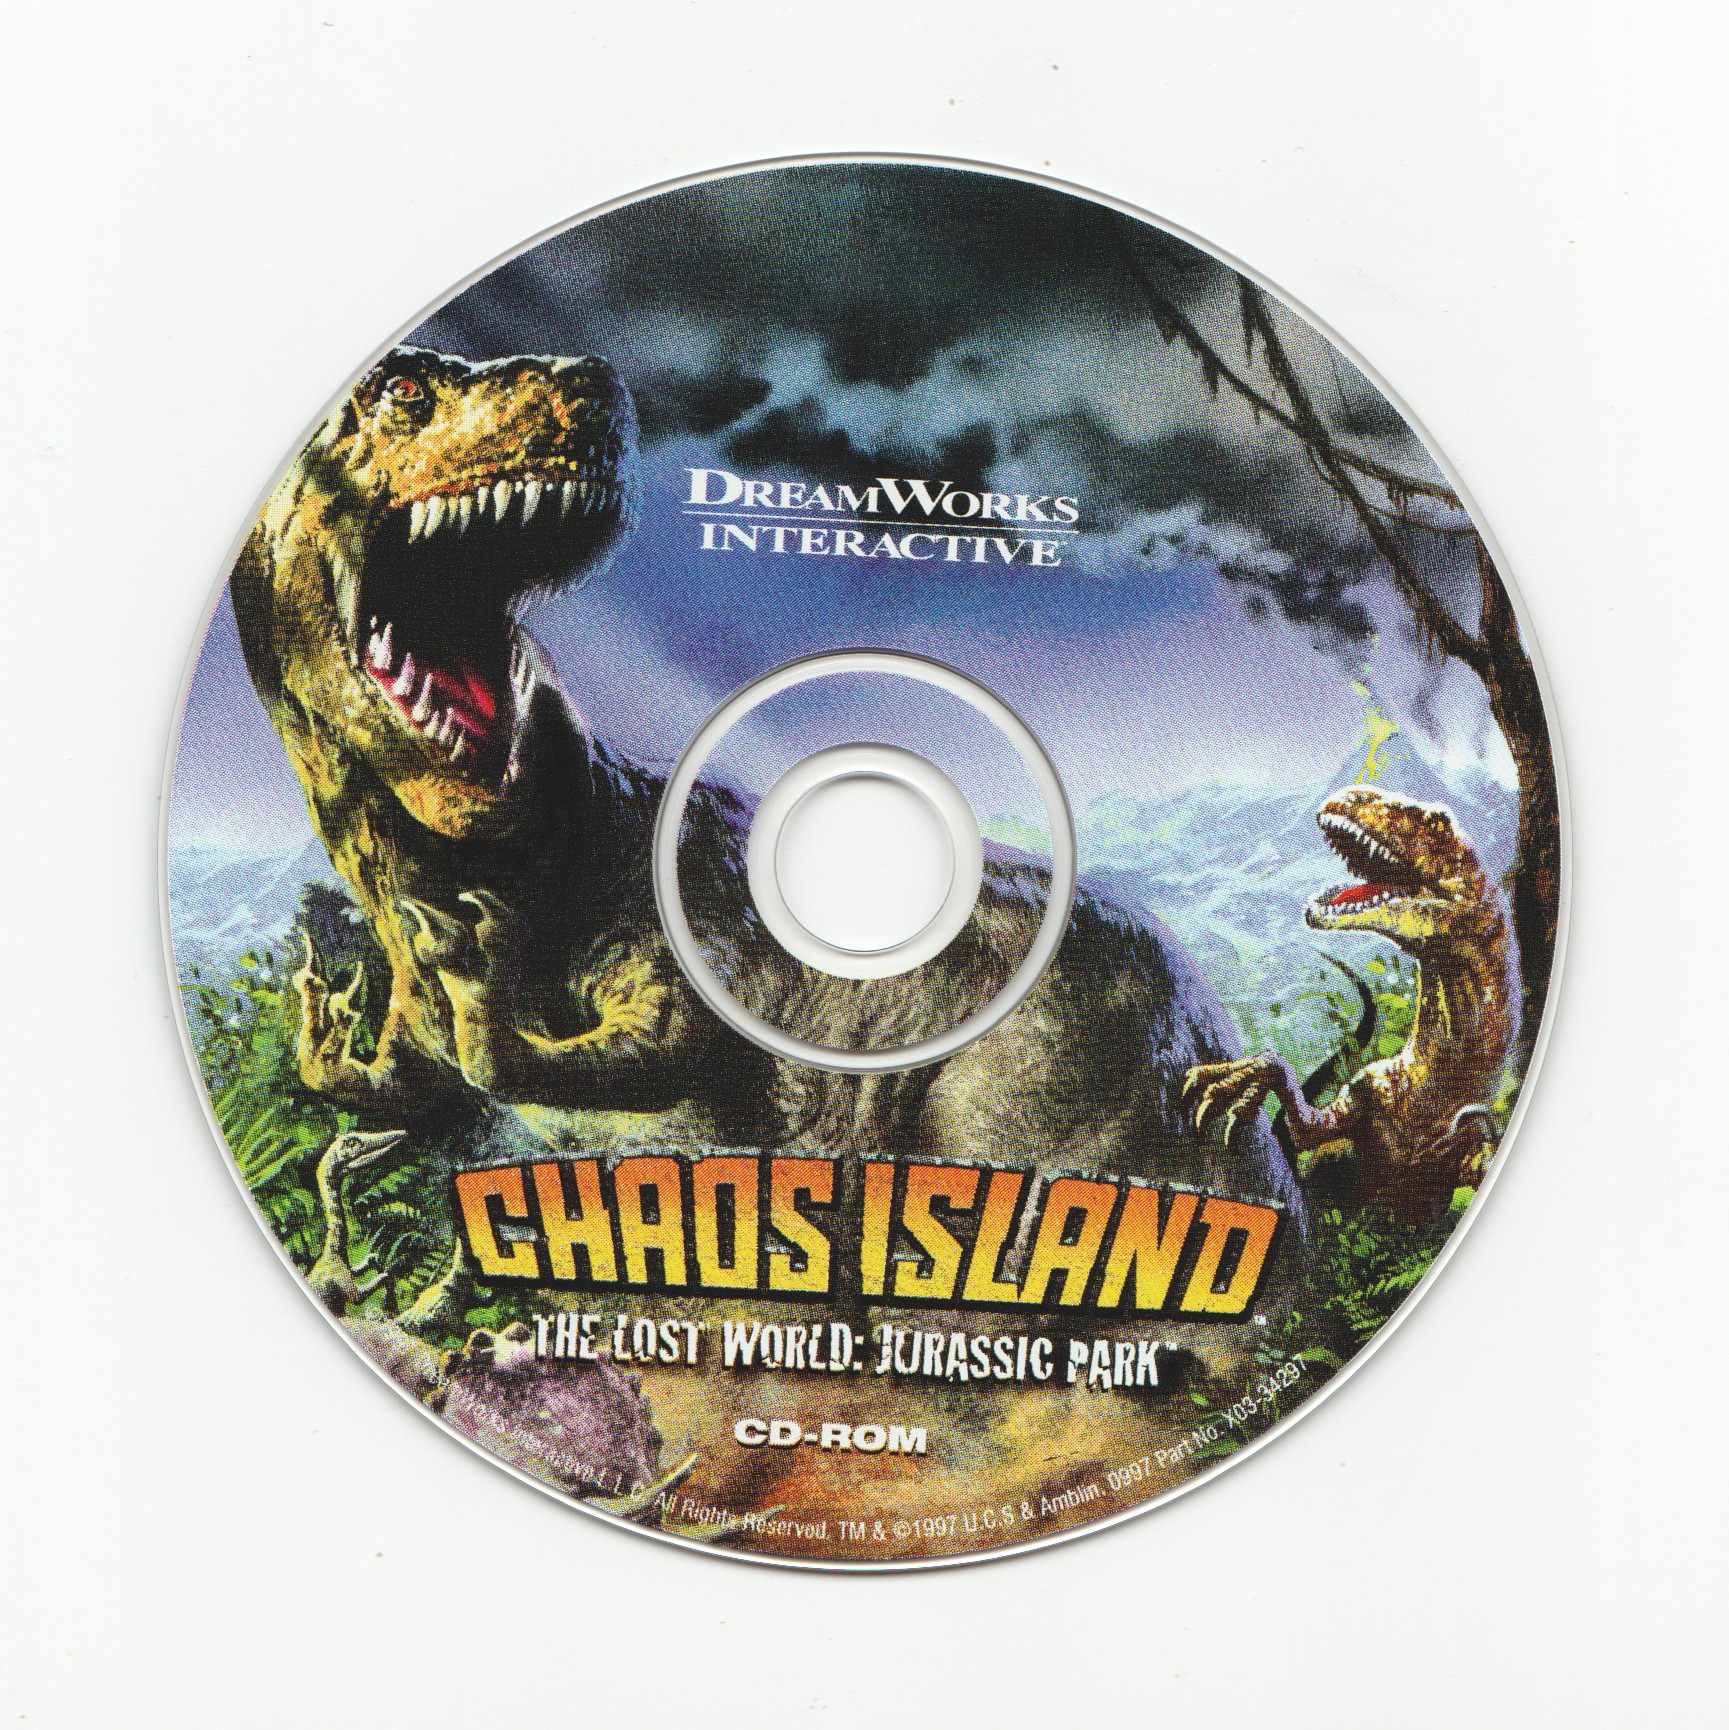 Chaos Island The Lost World Jurassic Park 1997 Free Download Borrow And Streaming Internet Archive